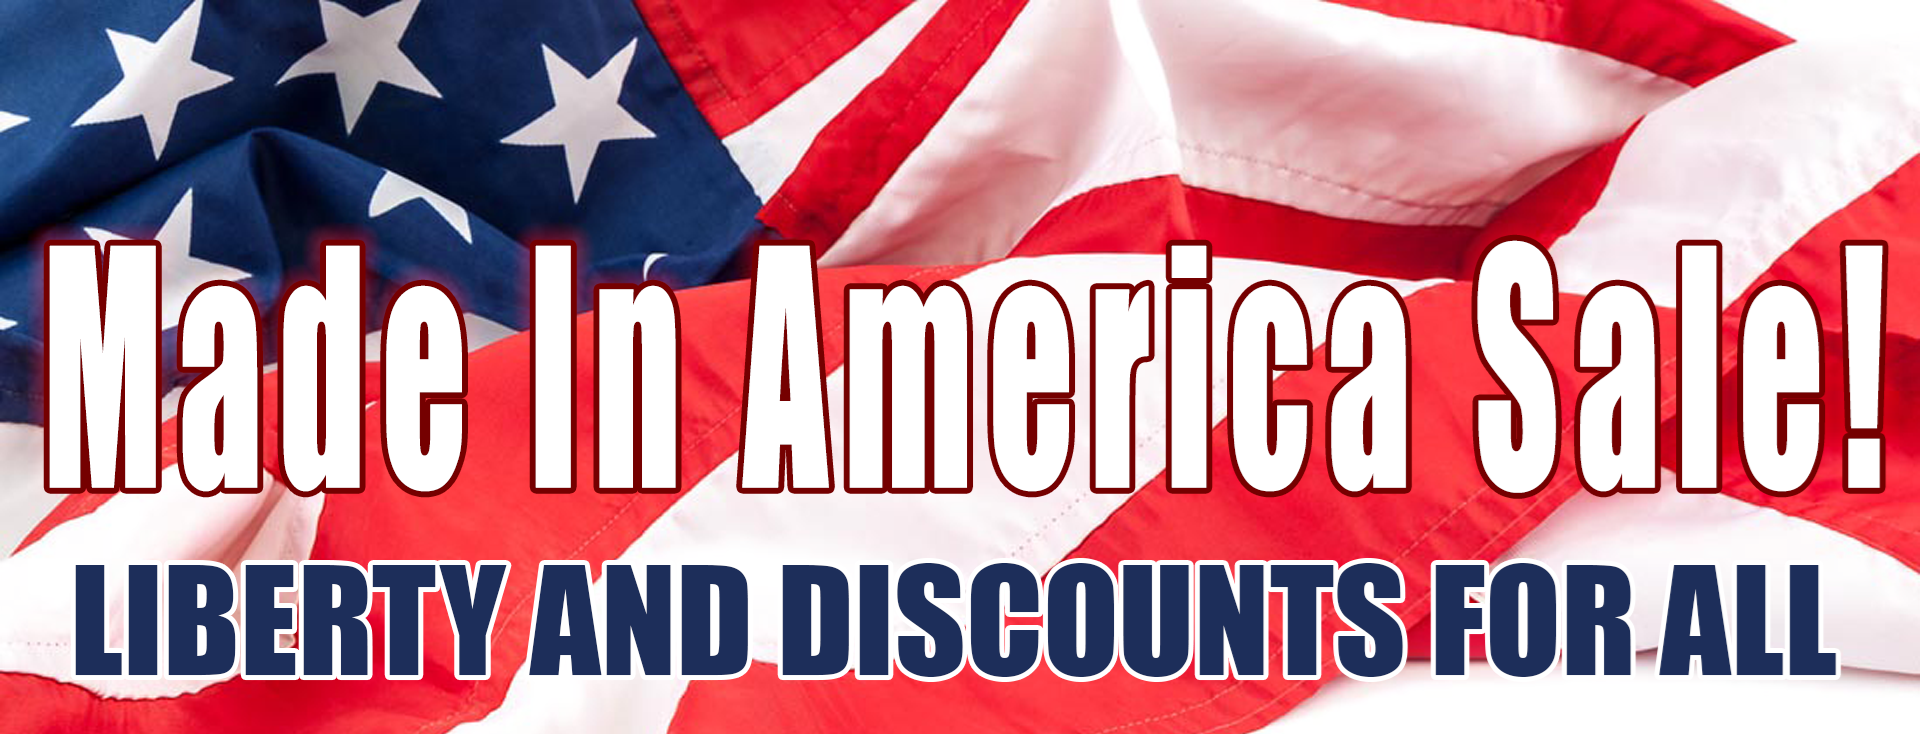 Liberty and discounts for all!